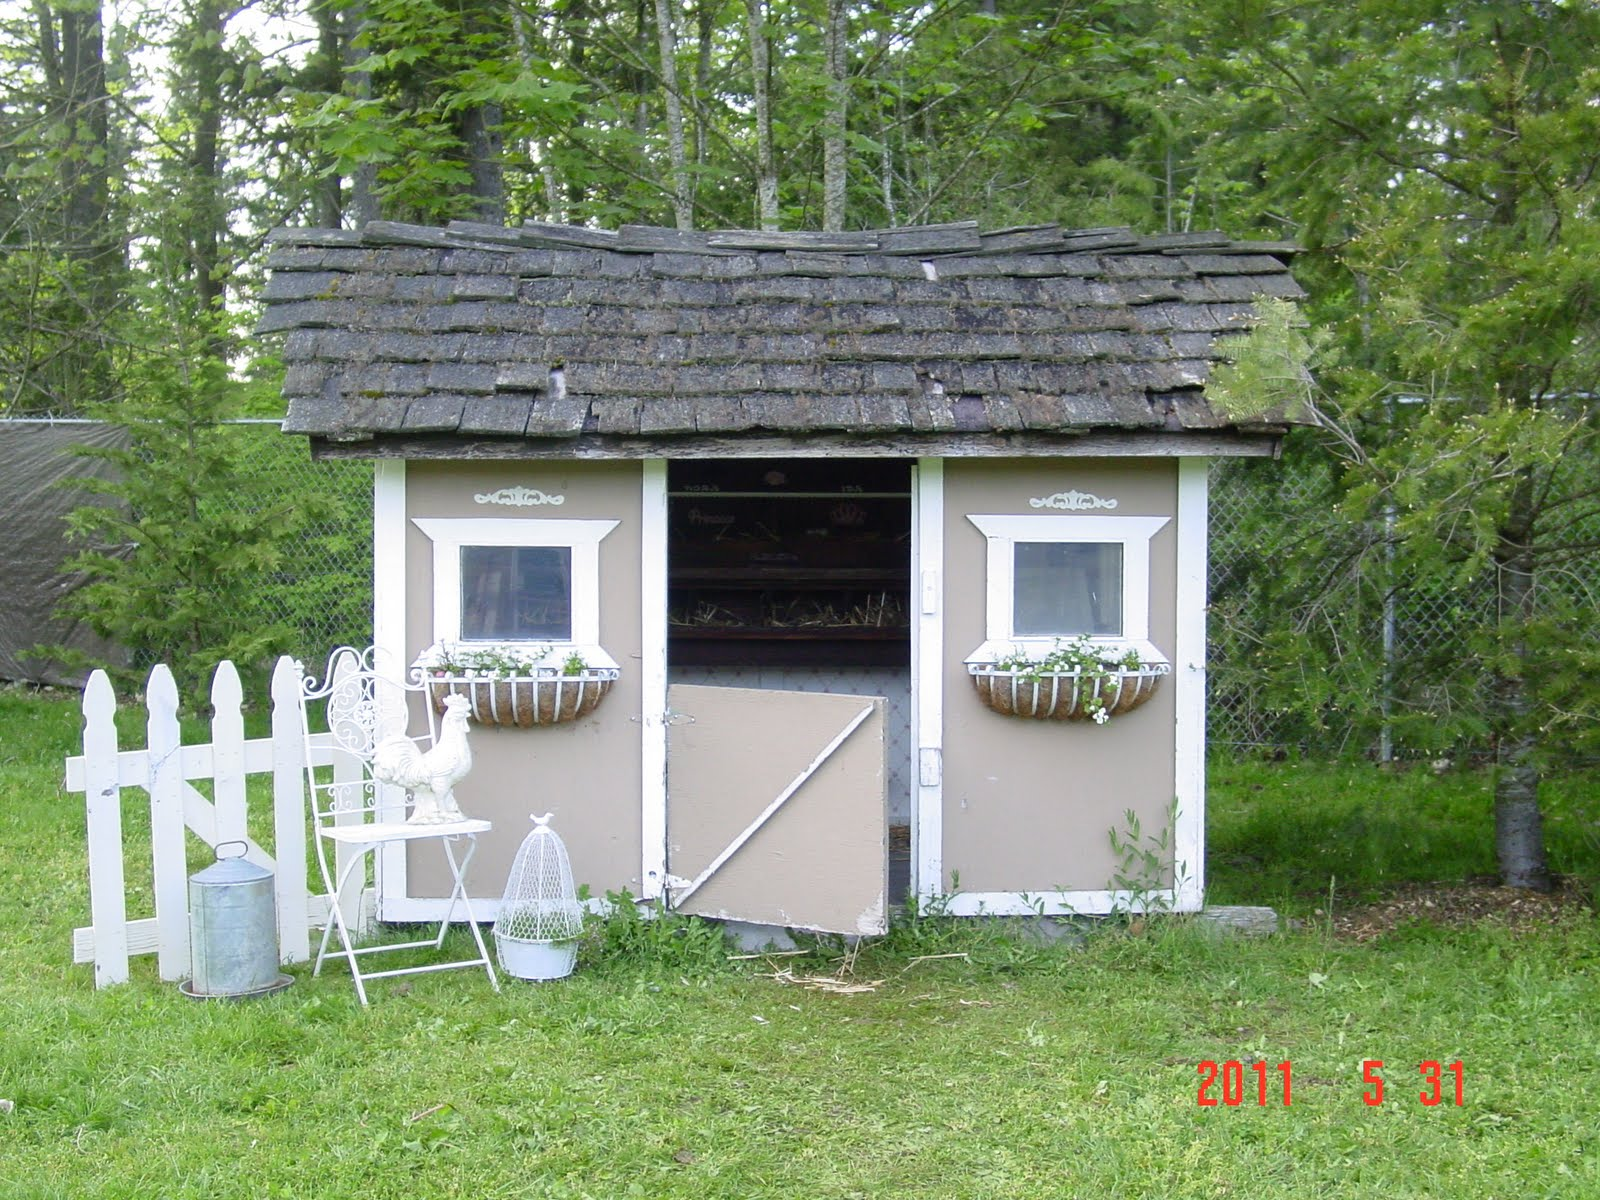 Denny yam fancy chicken coop pictures guide for Fancy chicken coops